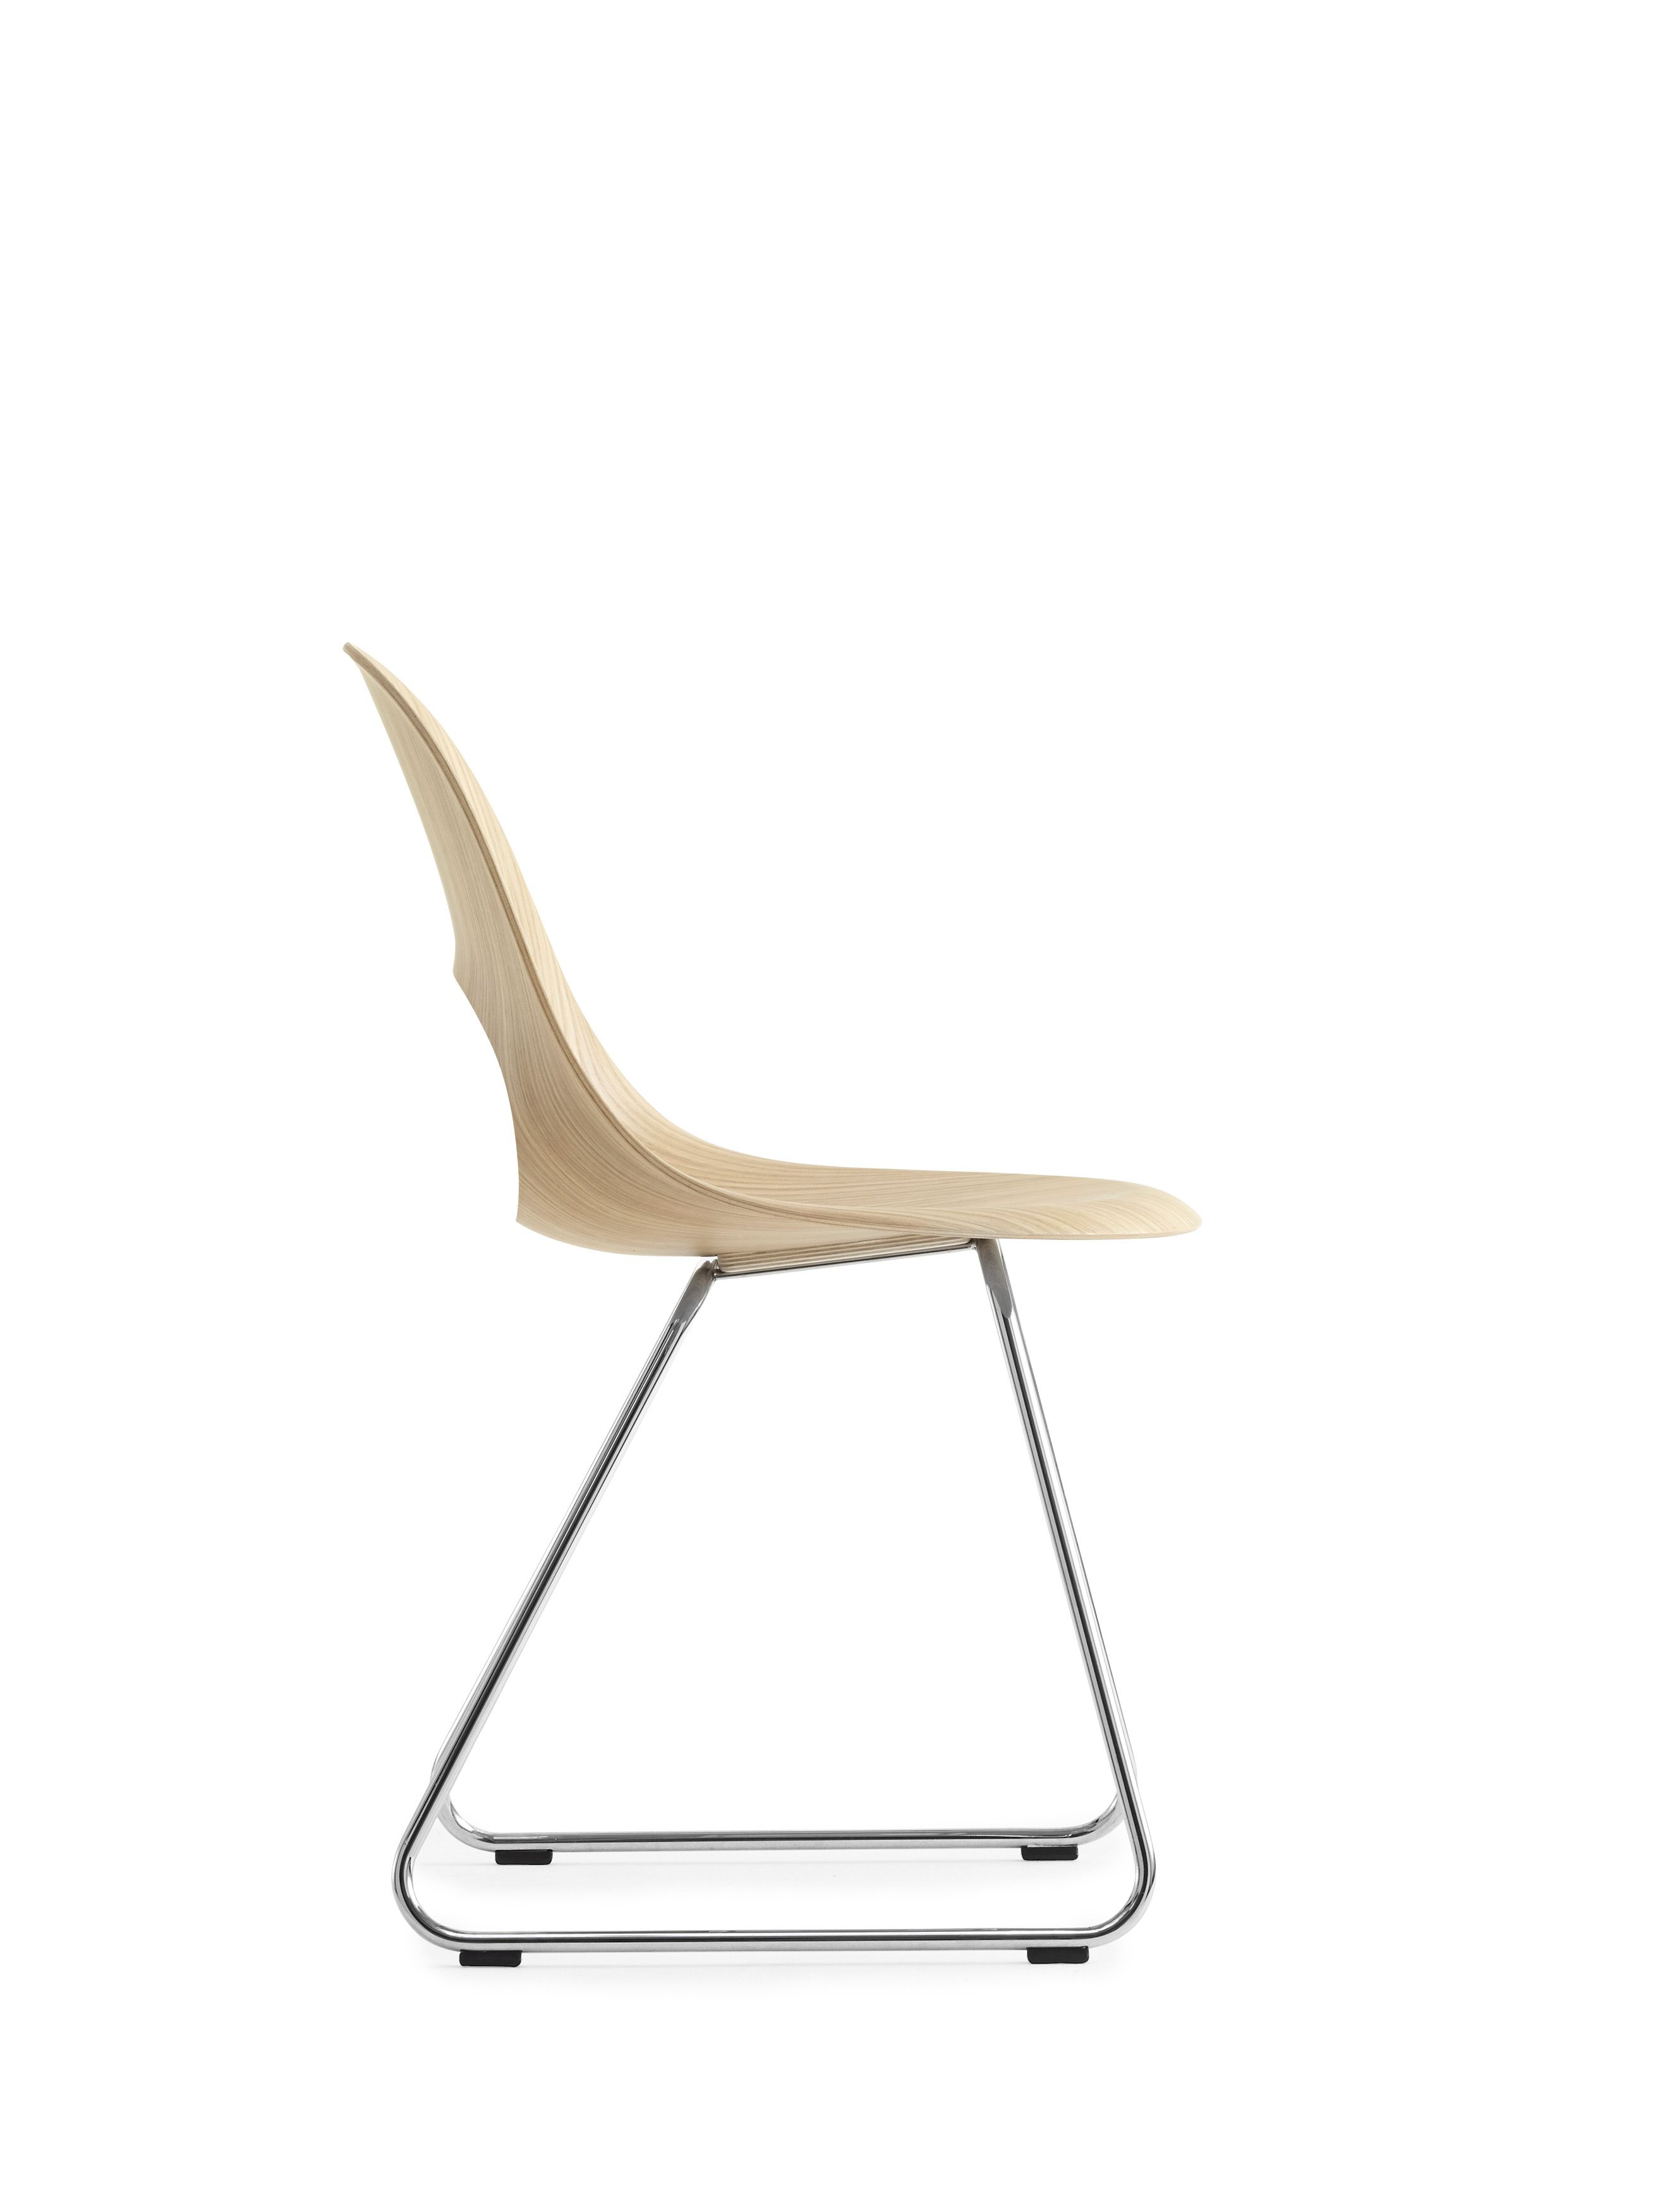 This beautiful SayO MiniLux Chair in raw wood with metal legs seen in profile. May be acquired with different types of wood veneer. Find out more at www.sayo.dk.